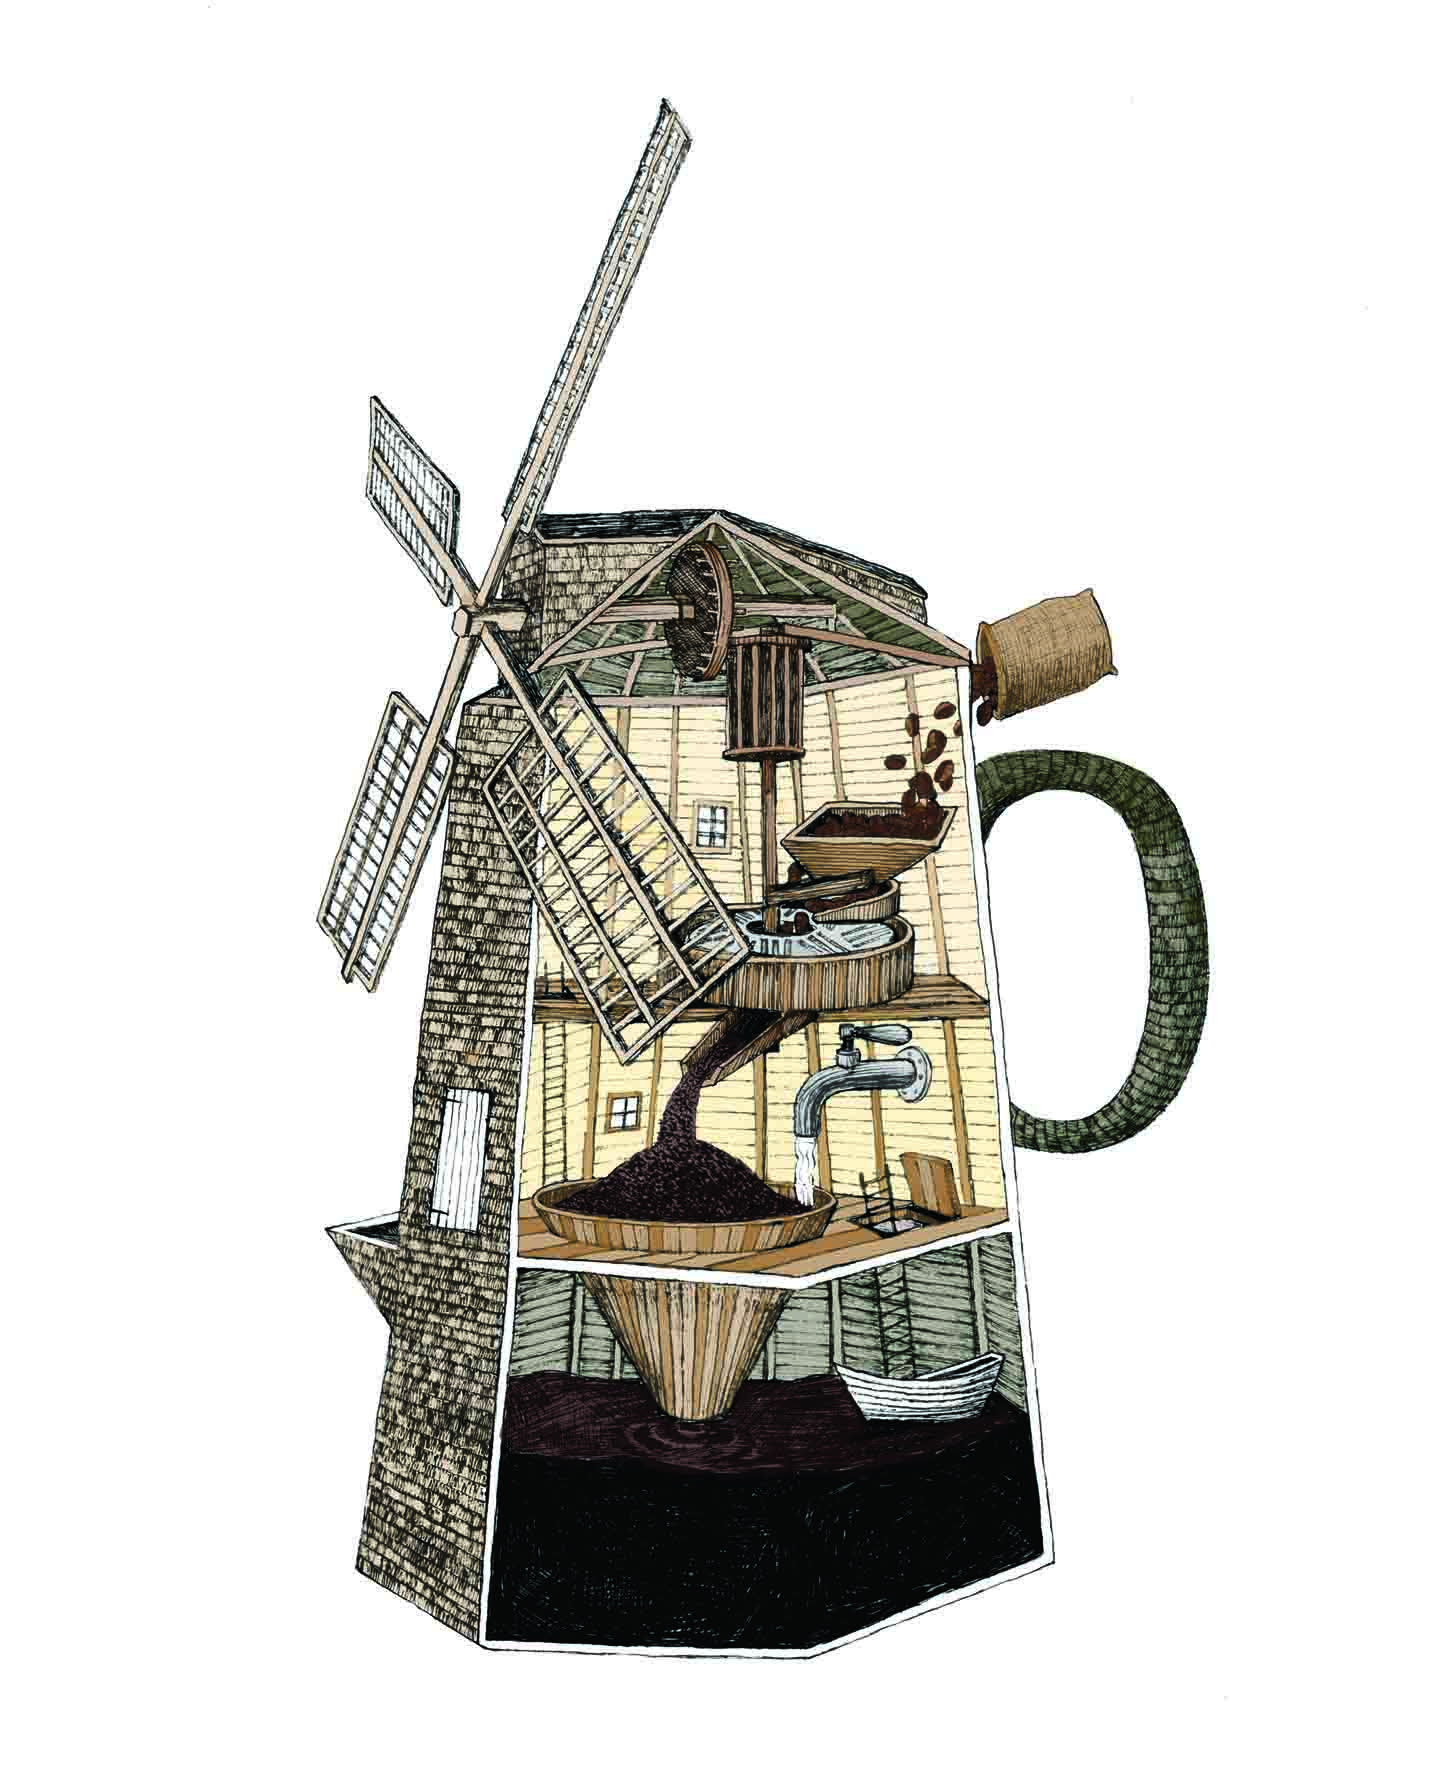 Grindstone Coffee Mill    ink and digital  Commissioned illustration for Grindstone Coffee Company  2016